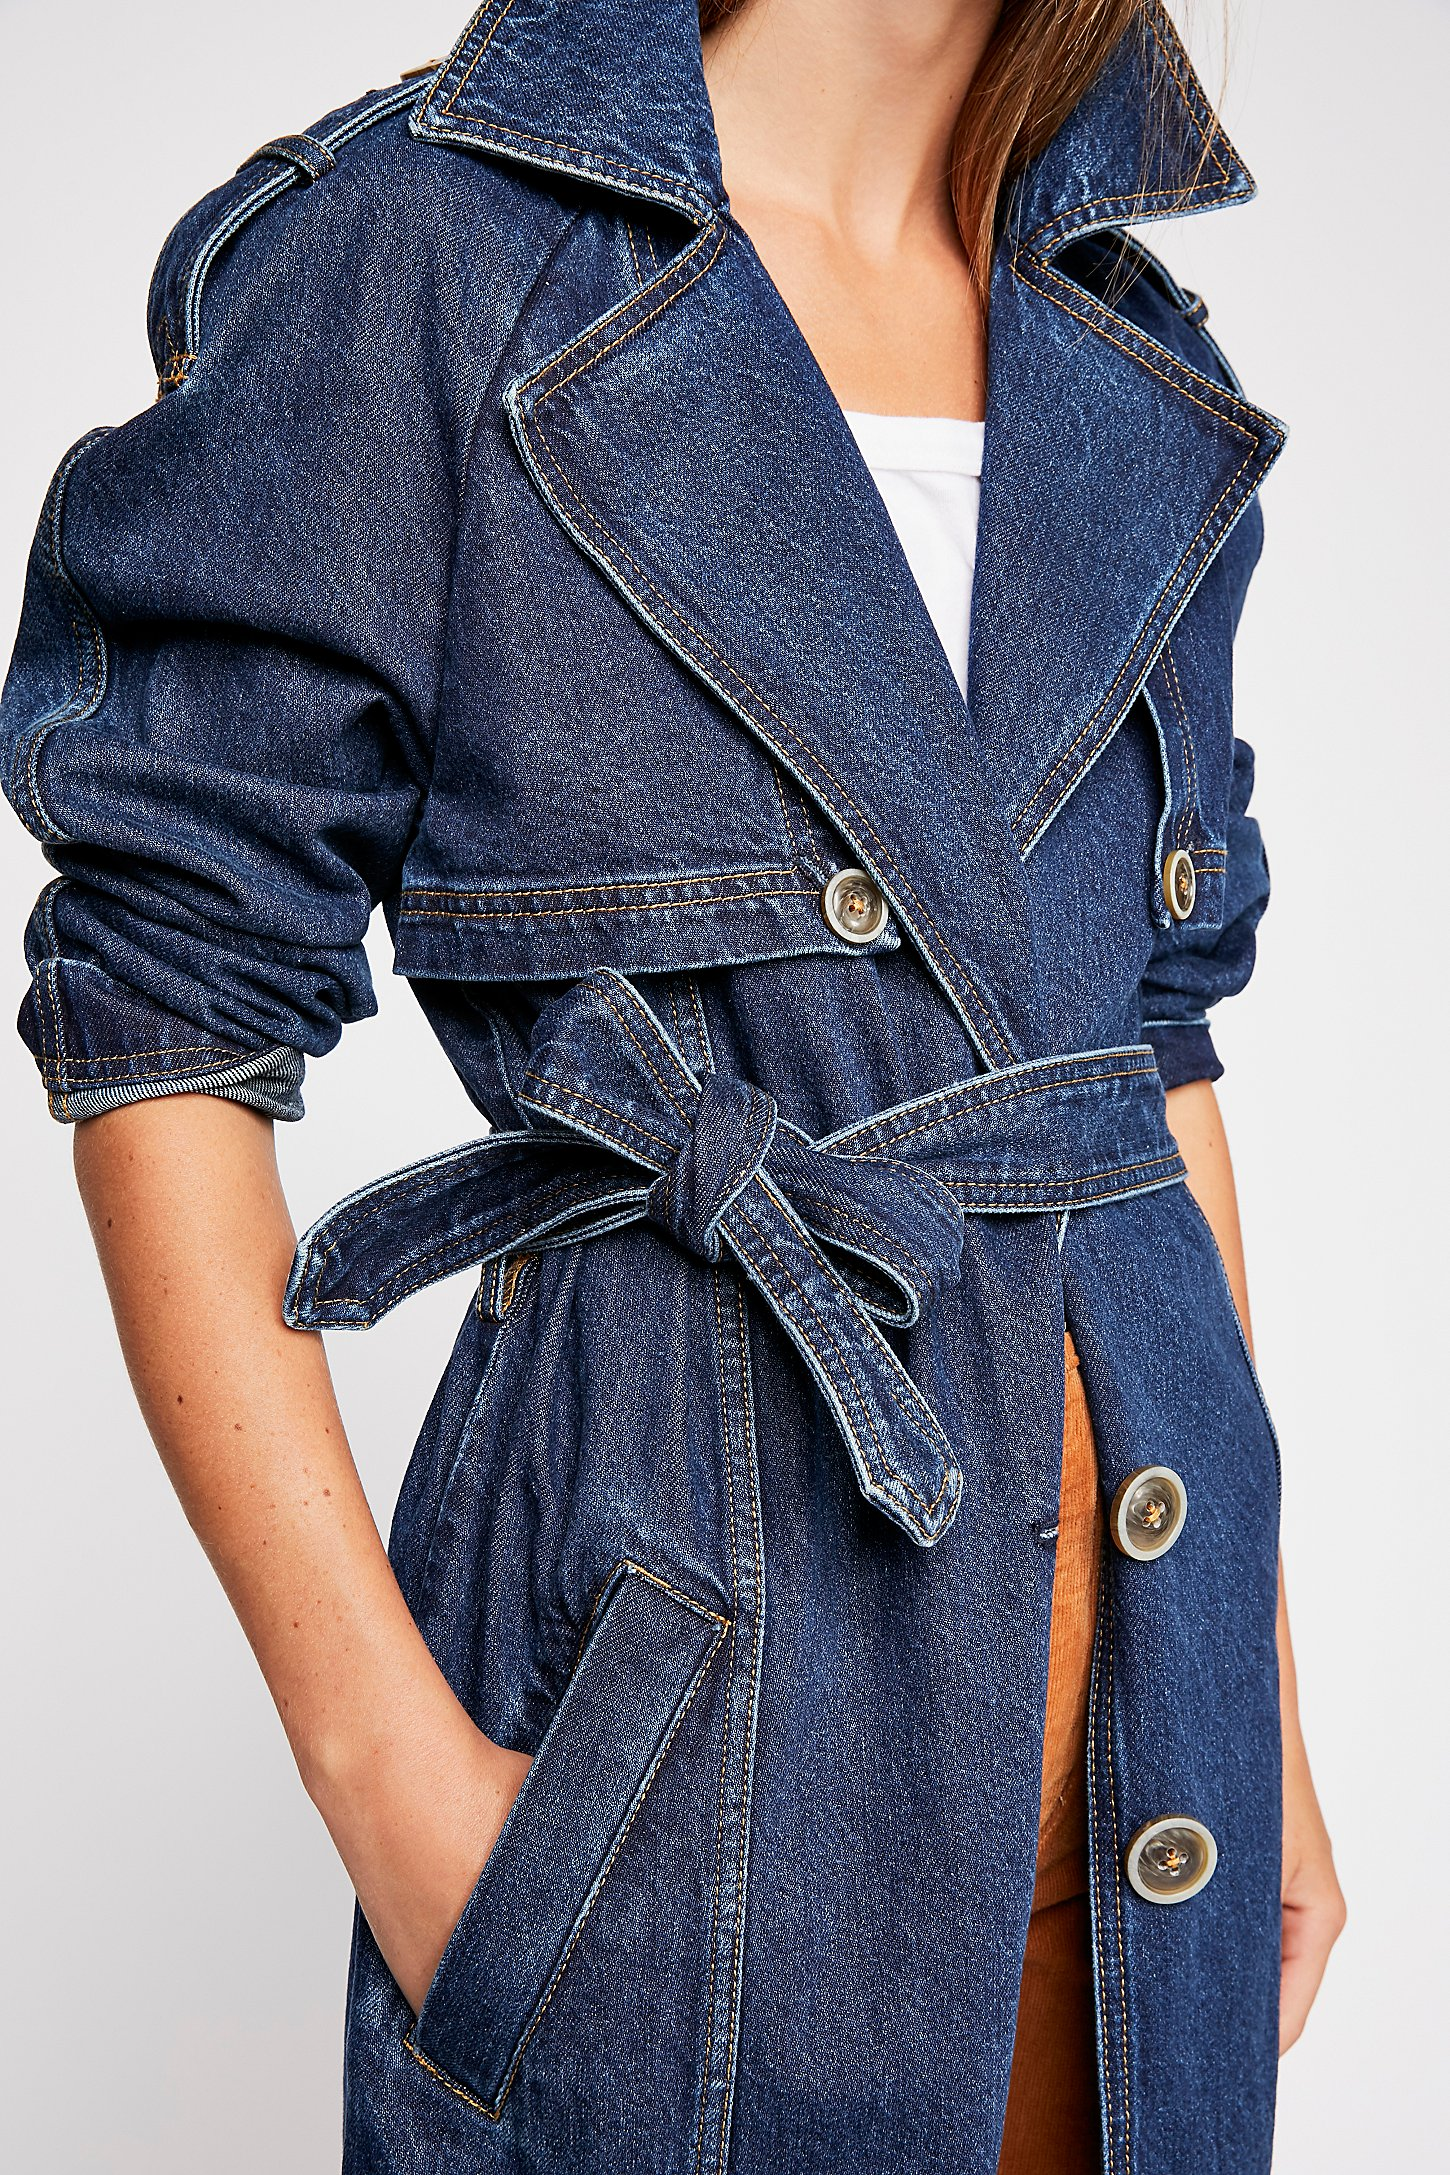 Indigo Night Duster | Free People